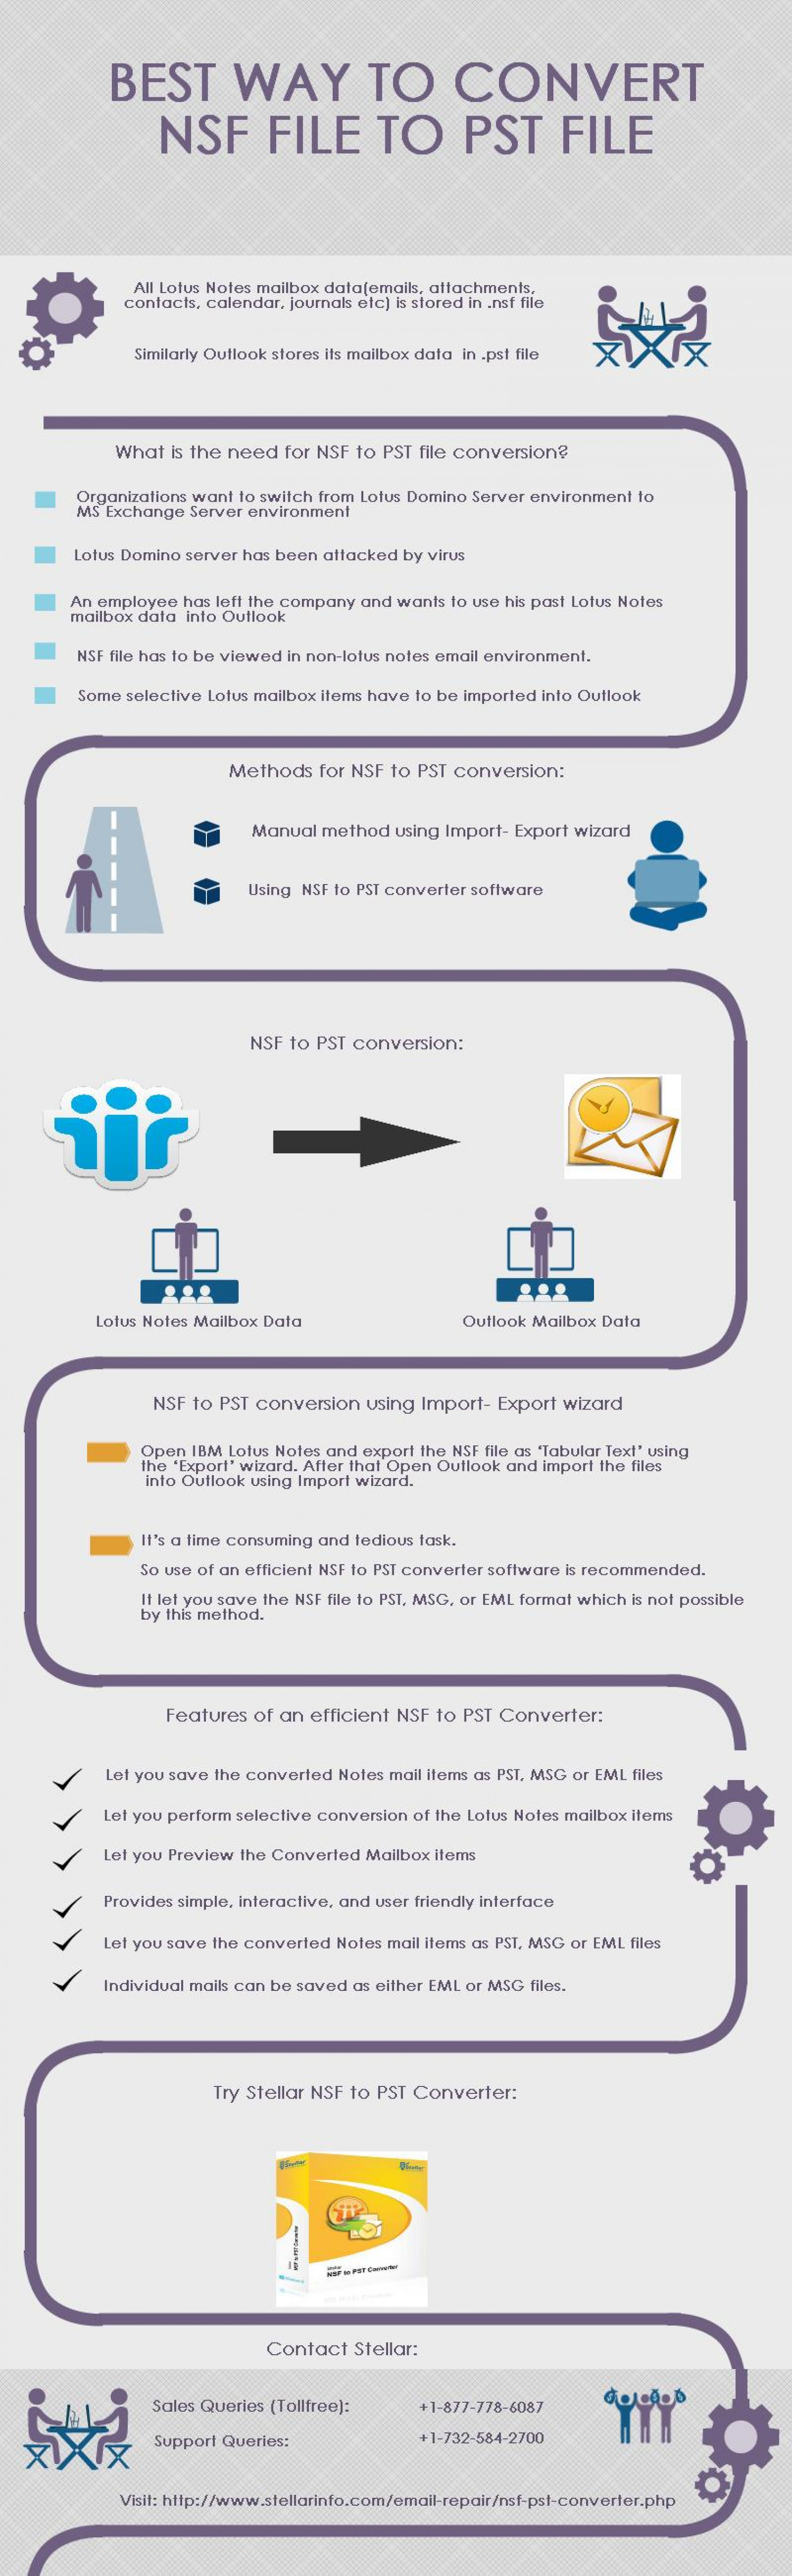 Best Way to Convert Nsf File to Pst File Infographic